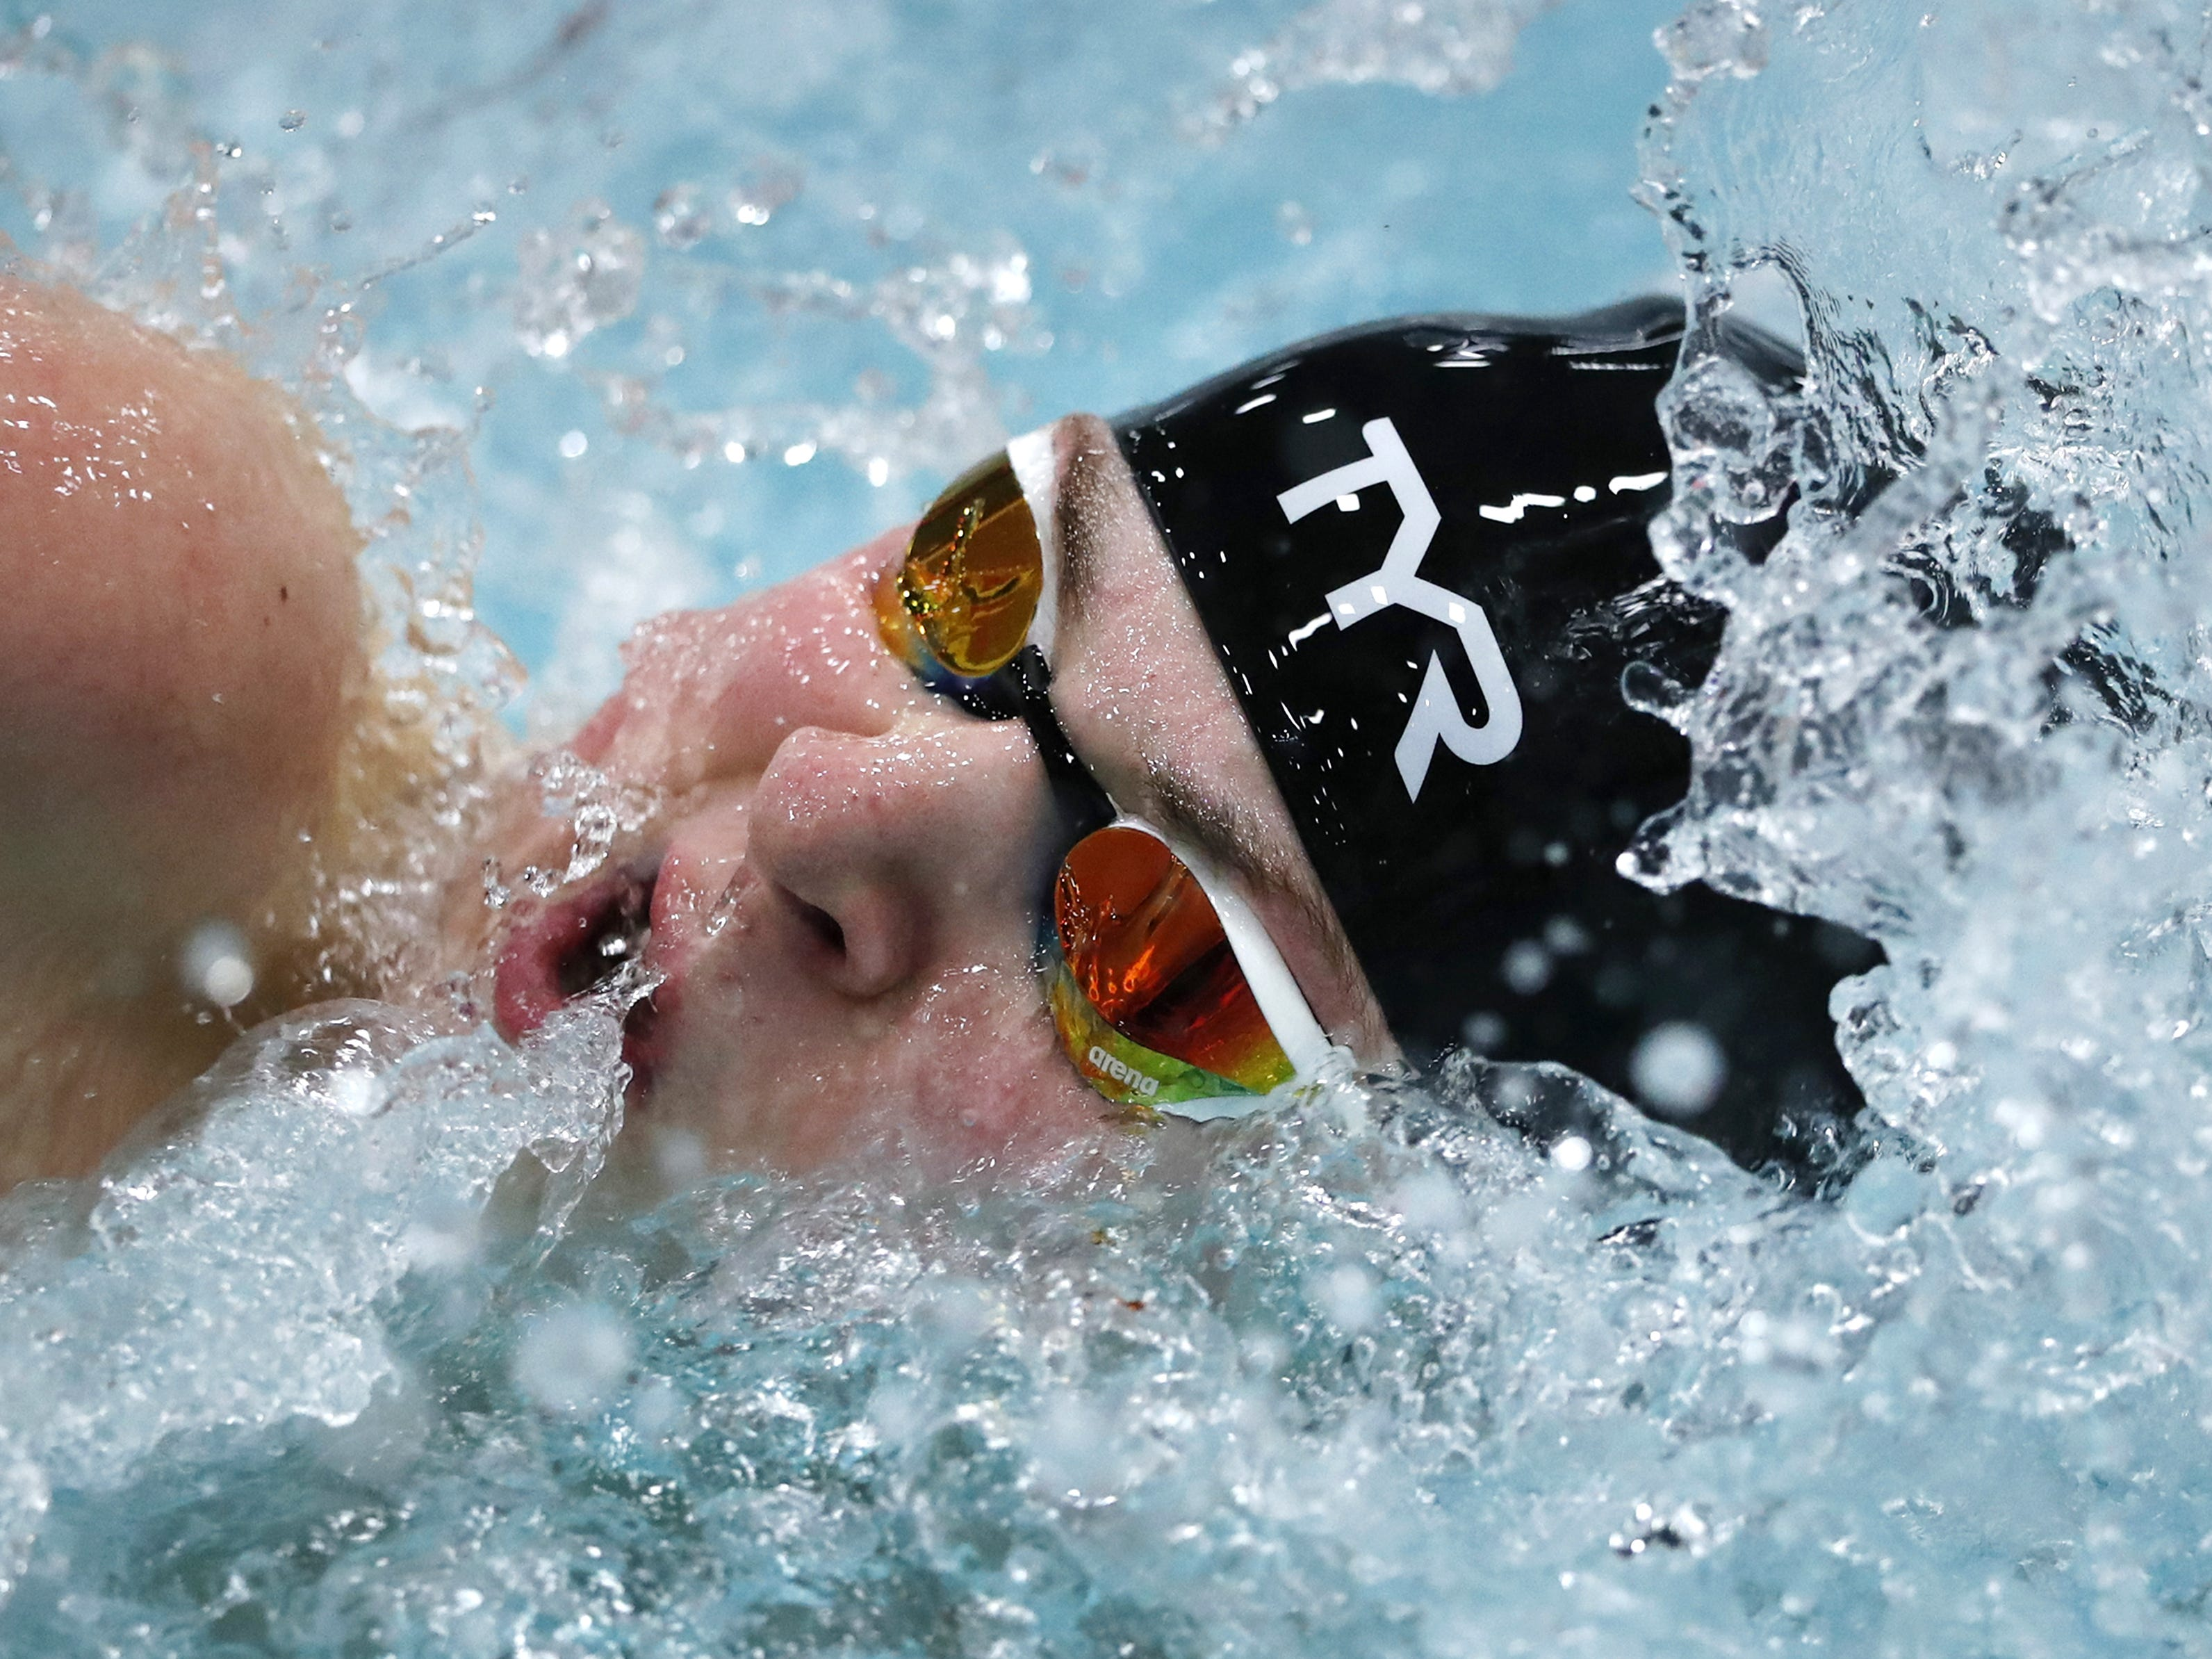 Stevens PointÕs Drew Harris races in the 400 yard freestyle relay during the Division 1 2019 State Boys Swimming and Diving Championships Saturday, Feb. 16, 2019, at the UW Natatorium in Madison, Wis. Danny Damiani/USA TODAY NETWORK-Wisconsin